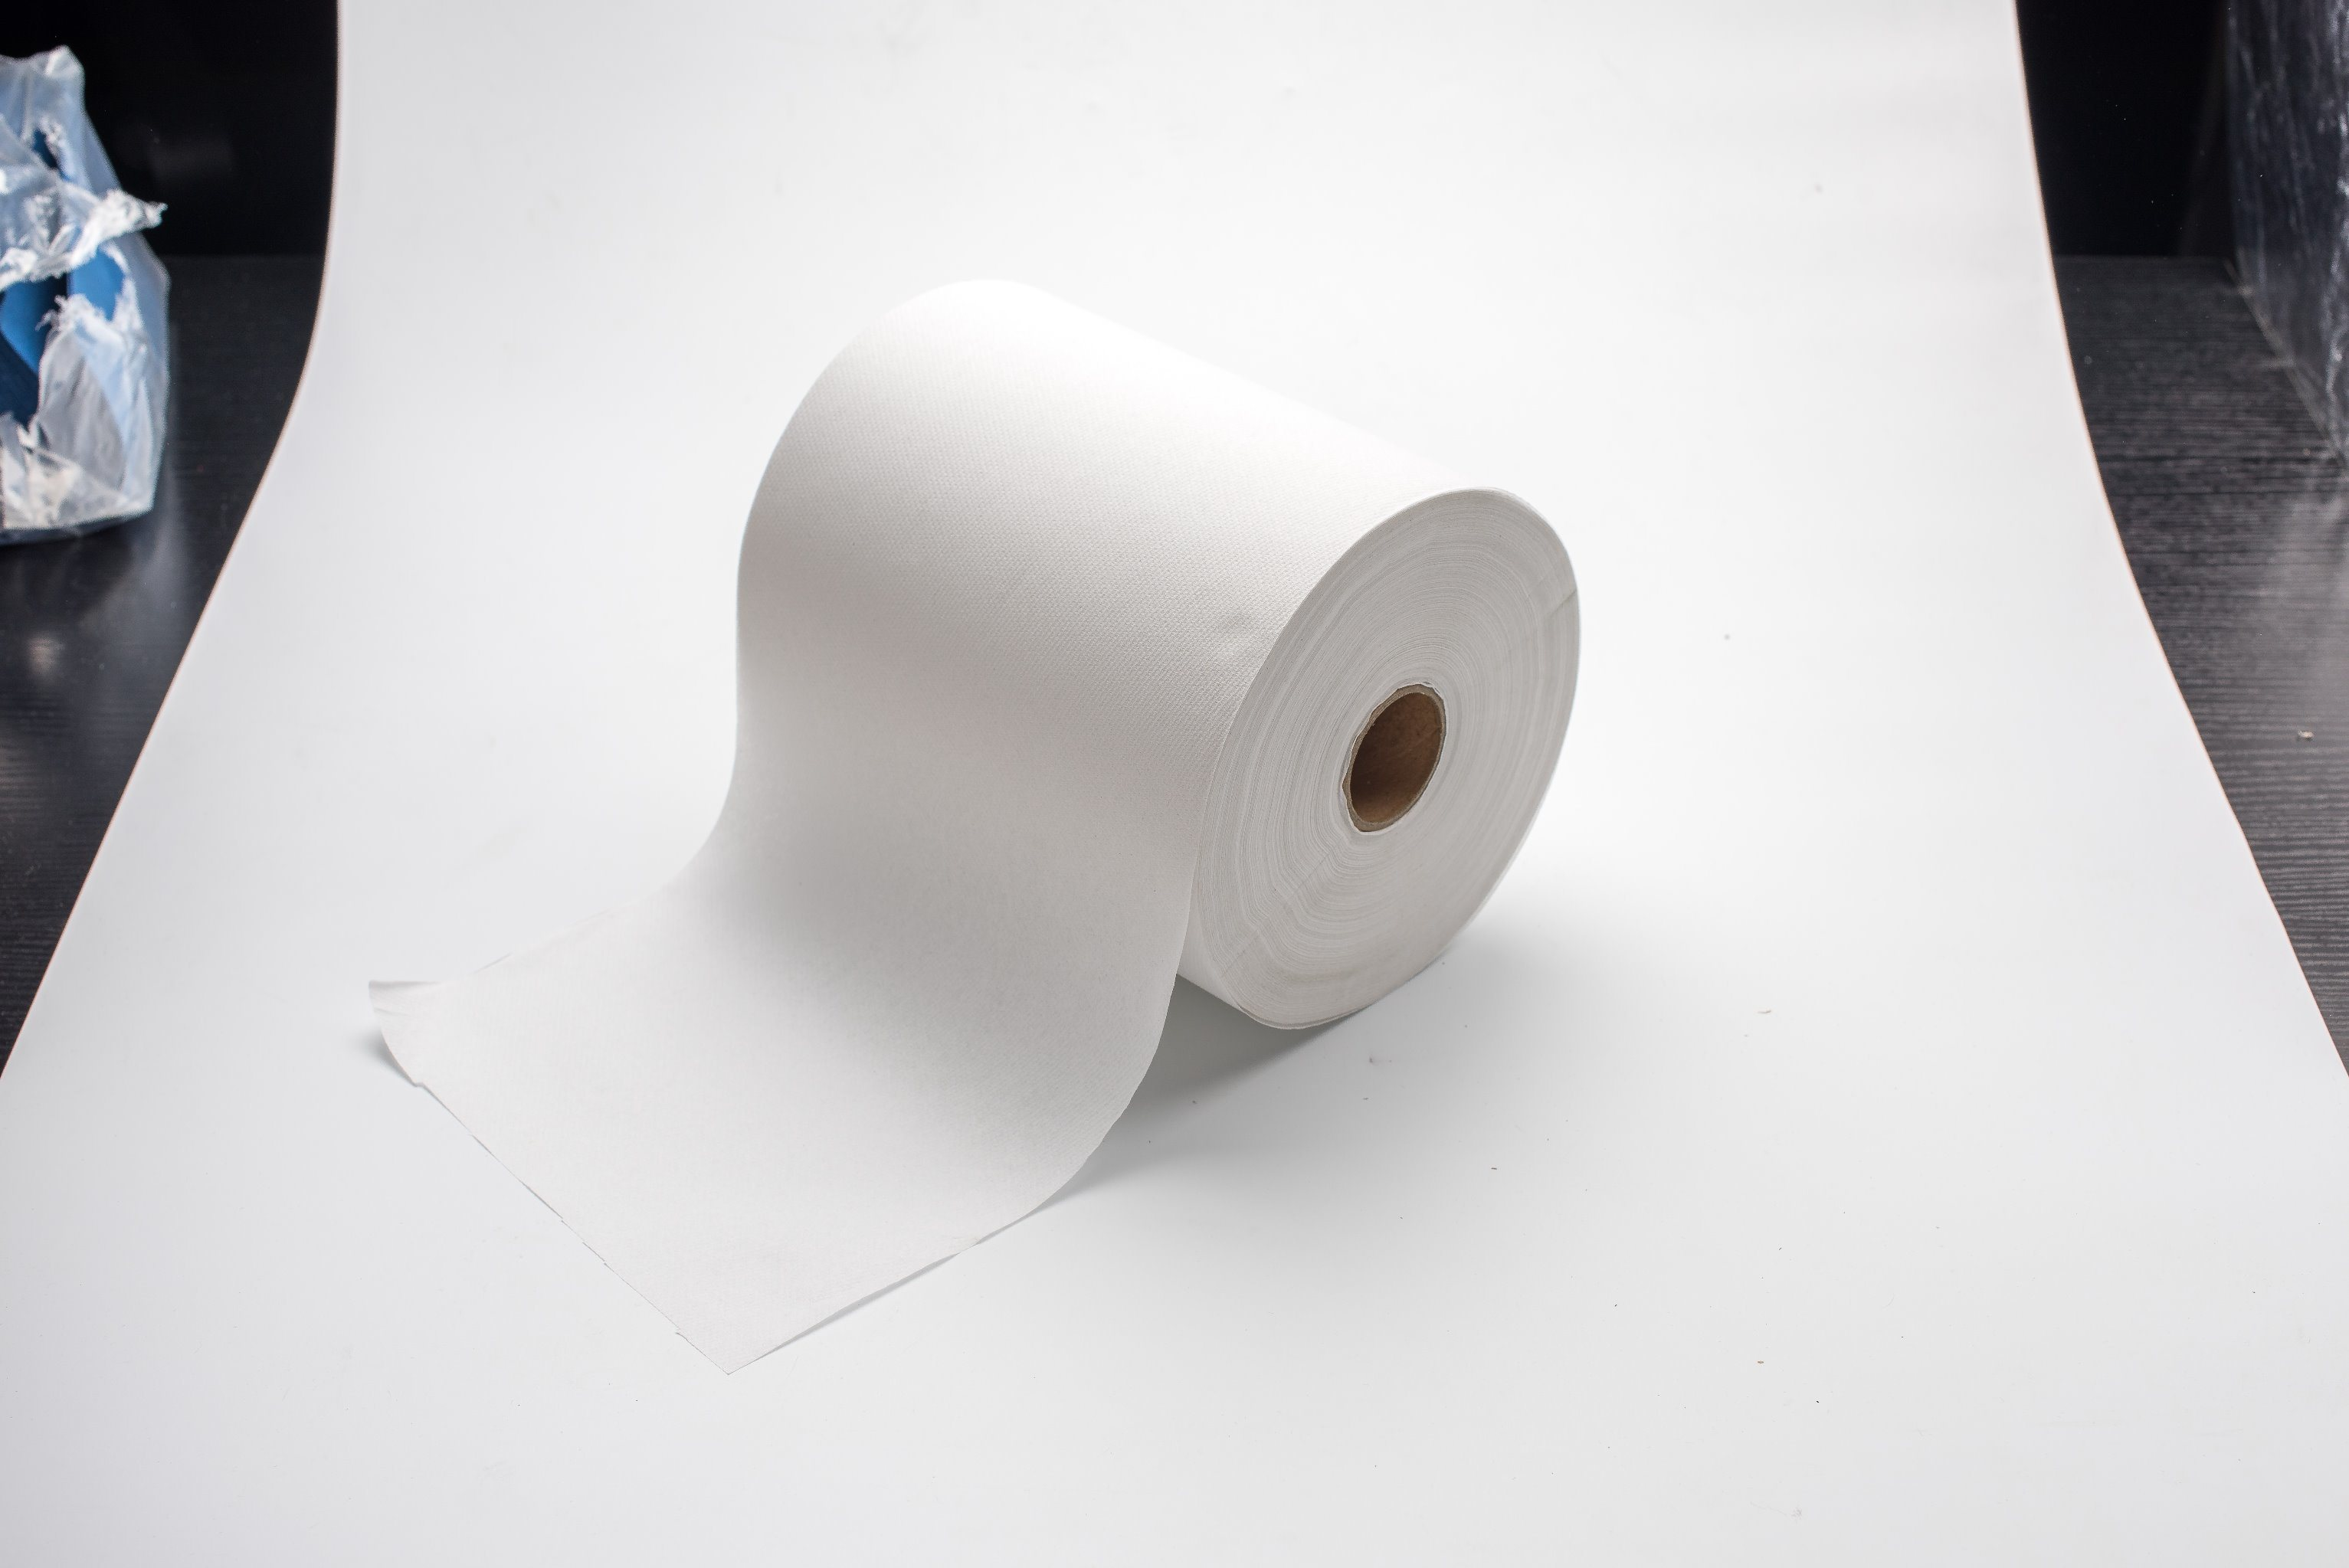 Hand Paper Towel Roll Wipes